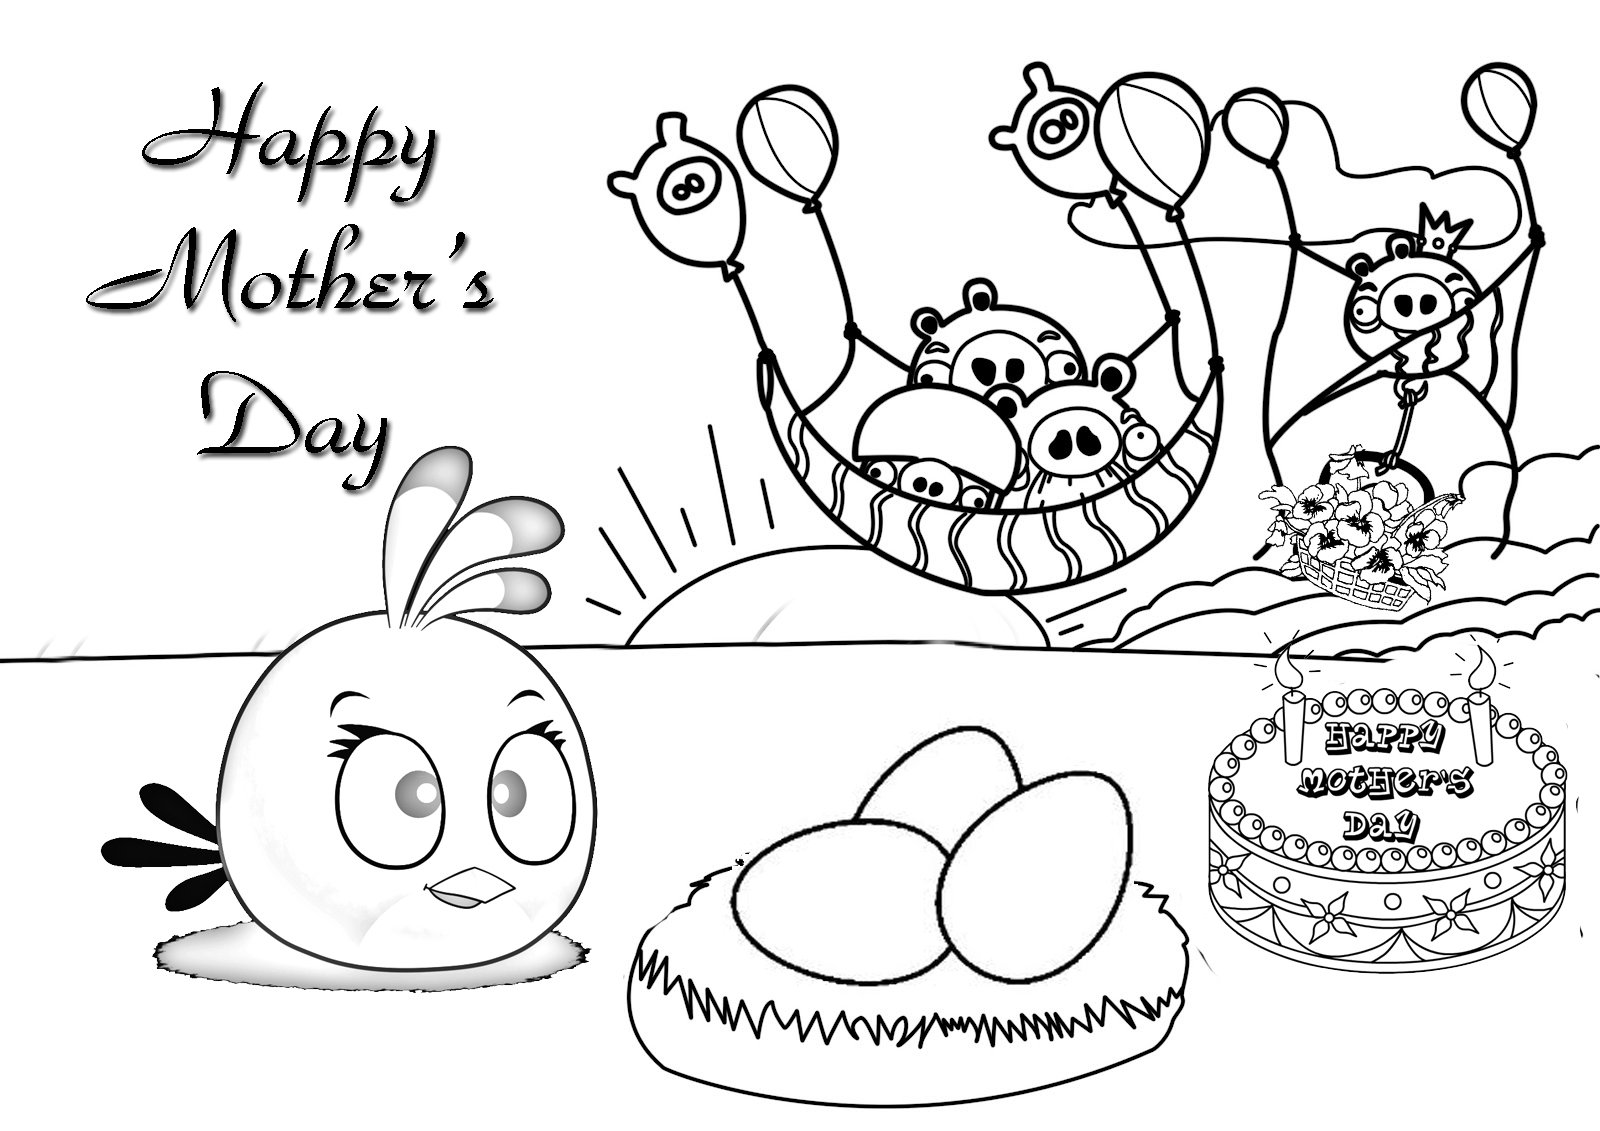 Free Printable Mothers Day Coloring Pages For Kids New